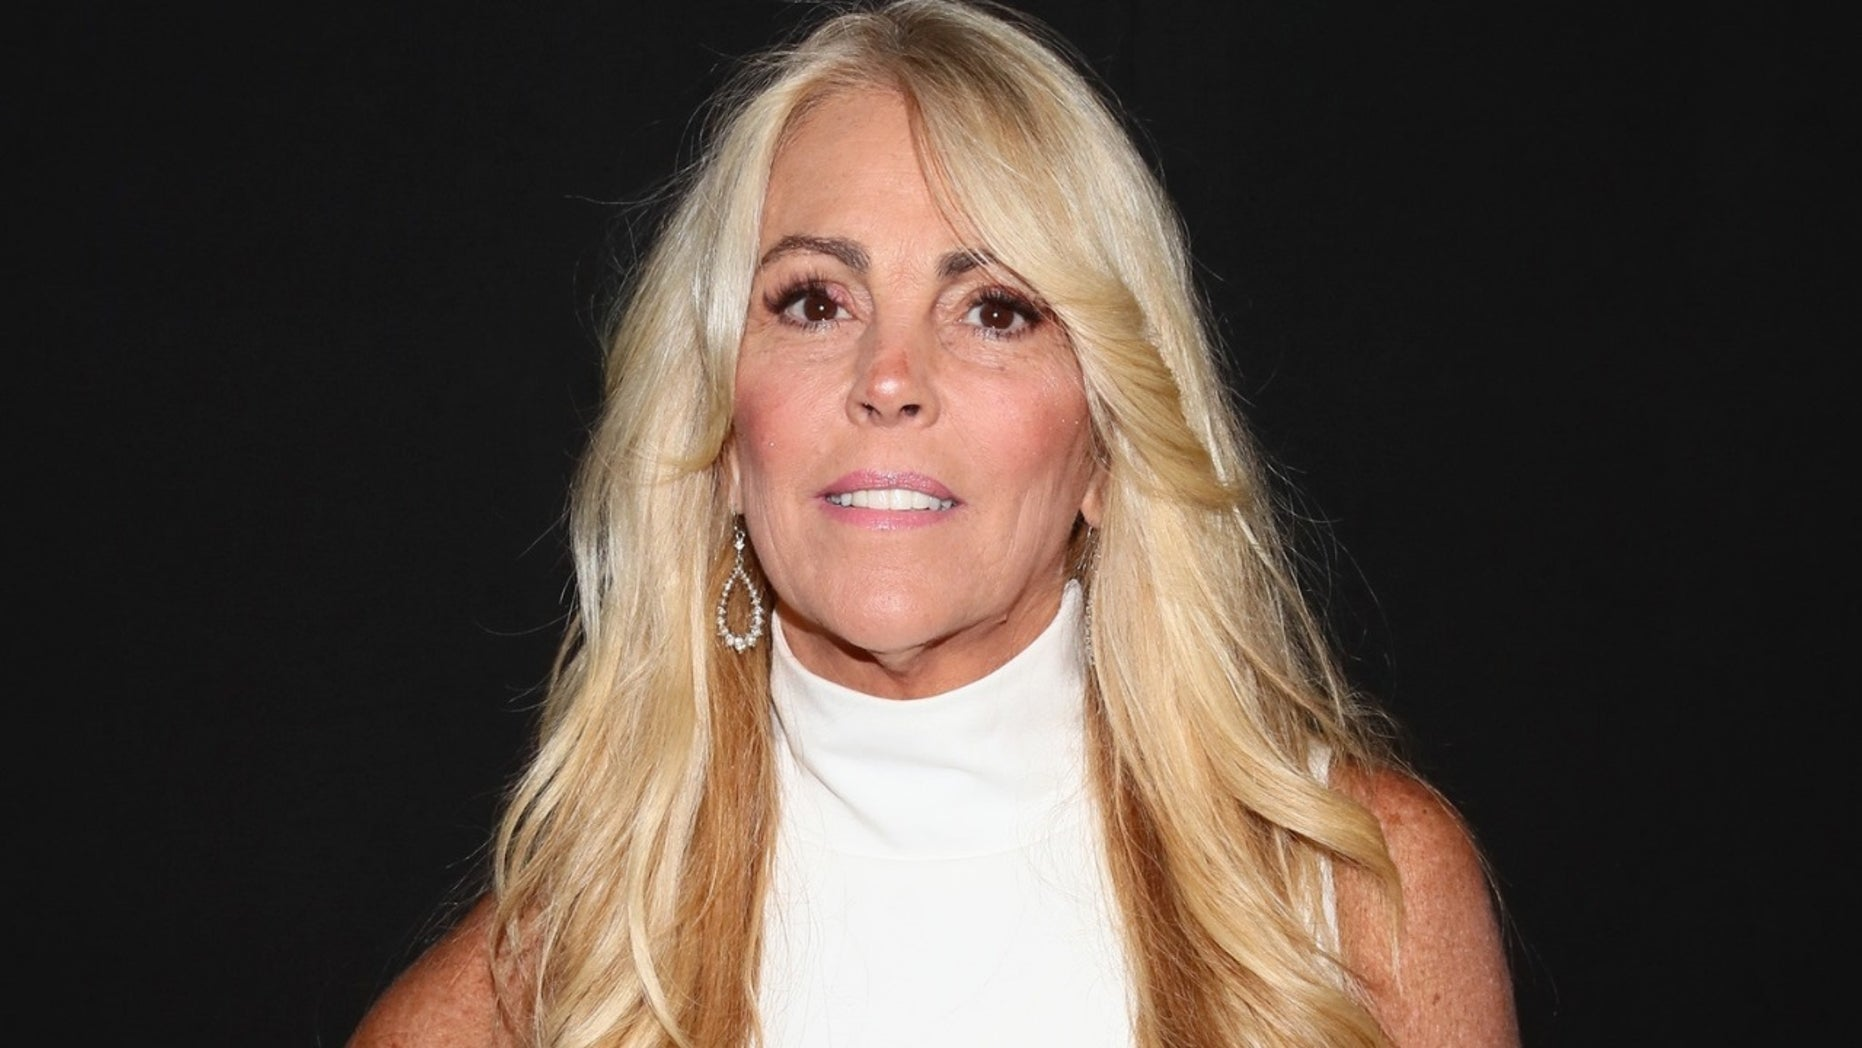 Dina Lohan Has Never Met Her Boyfriend of Five Years